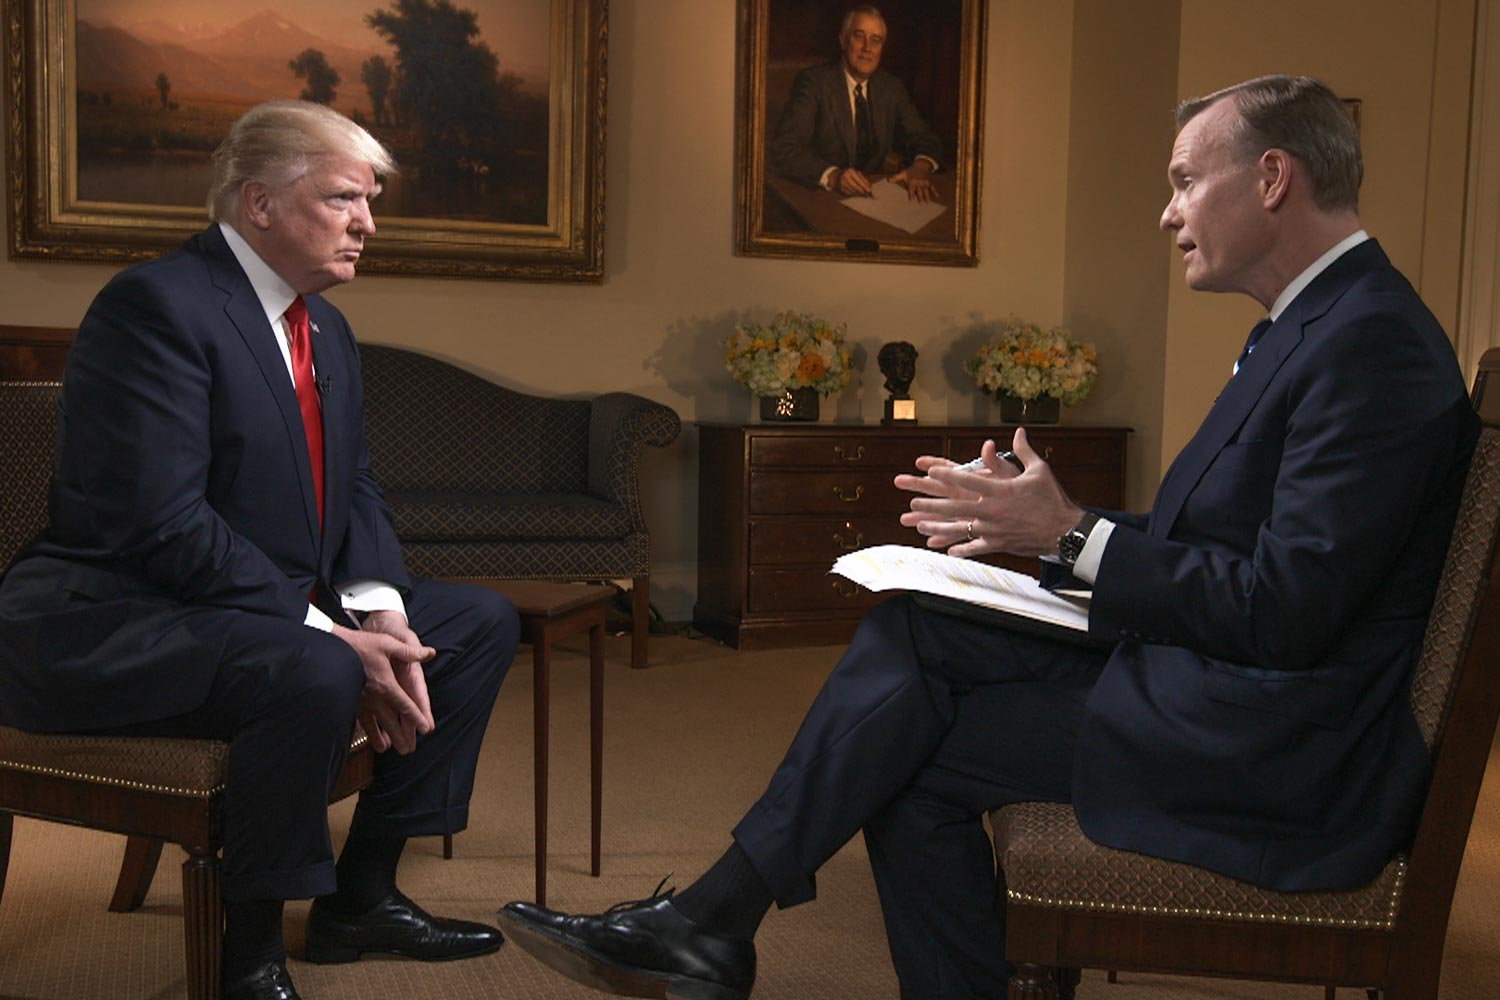 Dickerson interviewed President Trump in the Roosevelt Room at the White House on Trump's first 100 days in office.